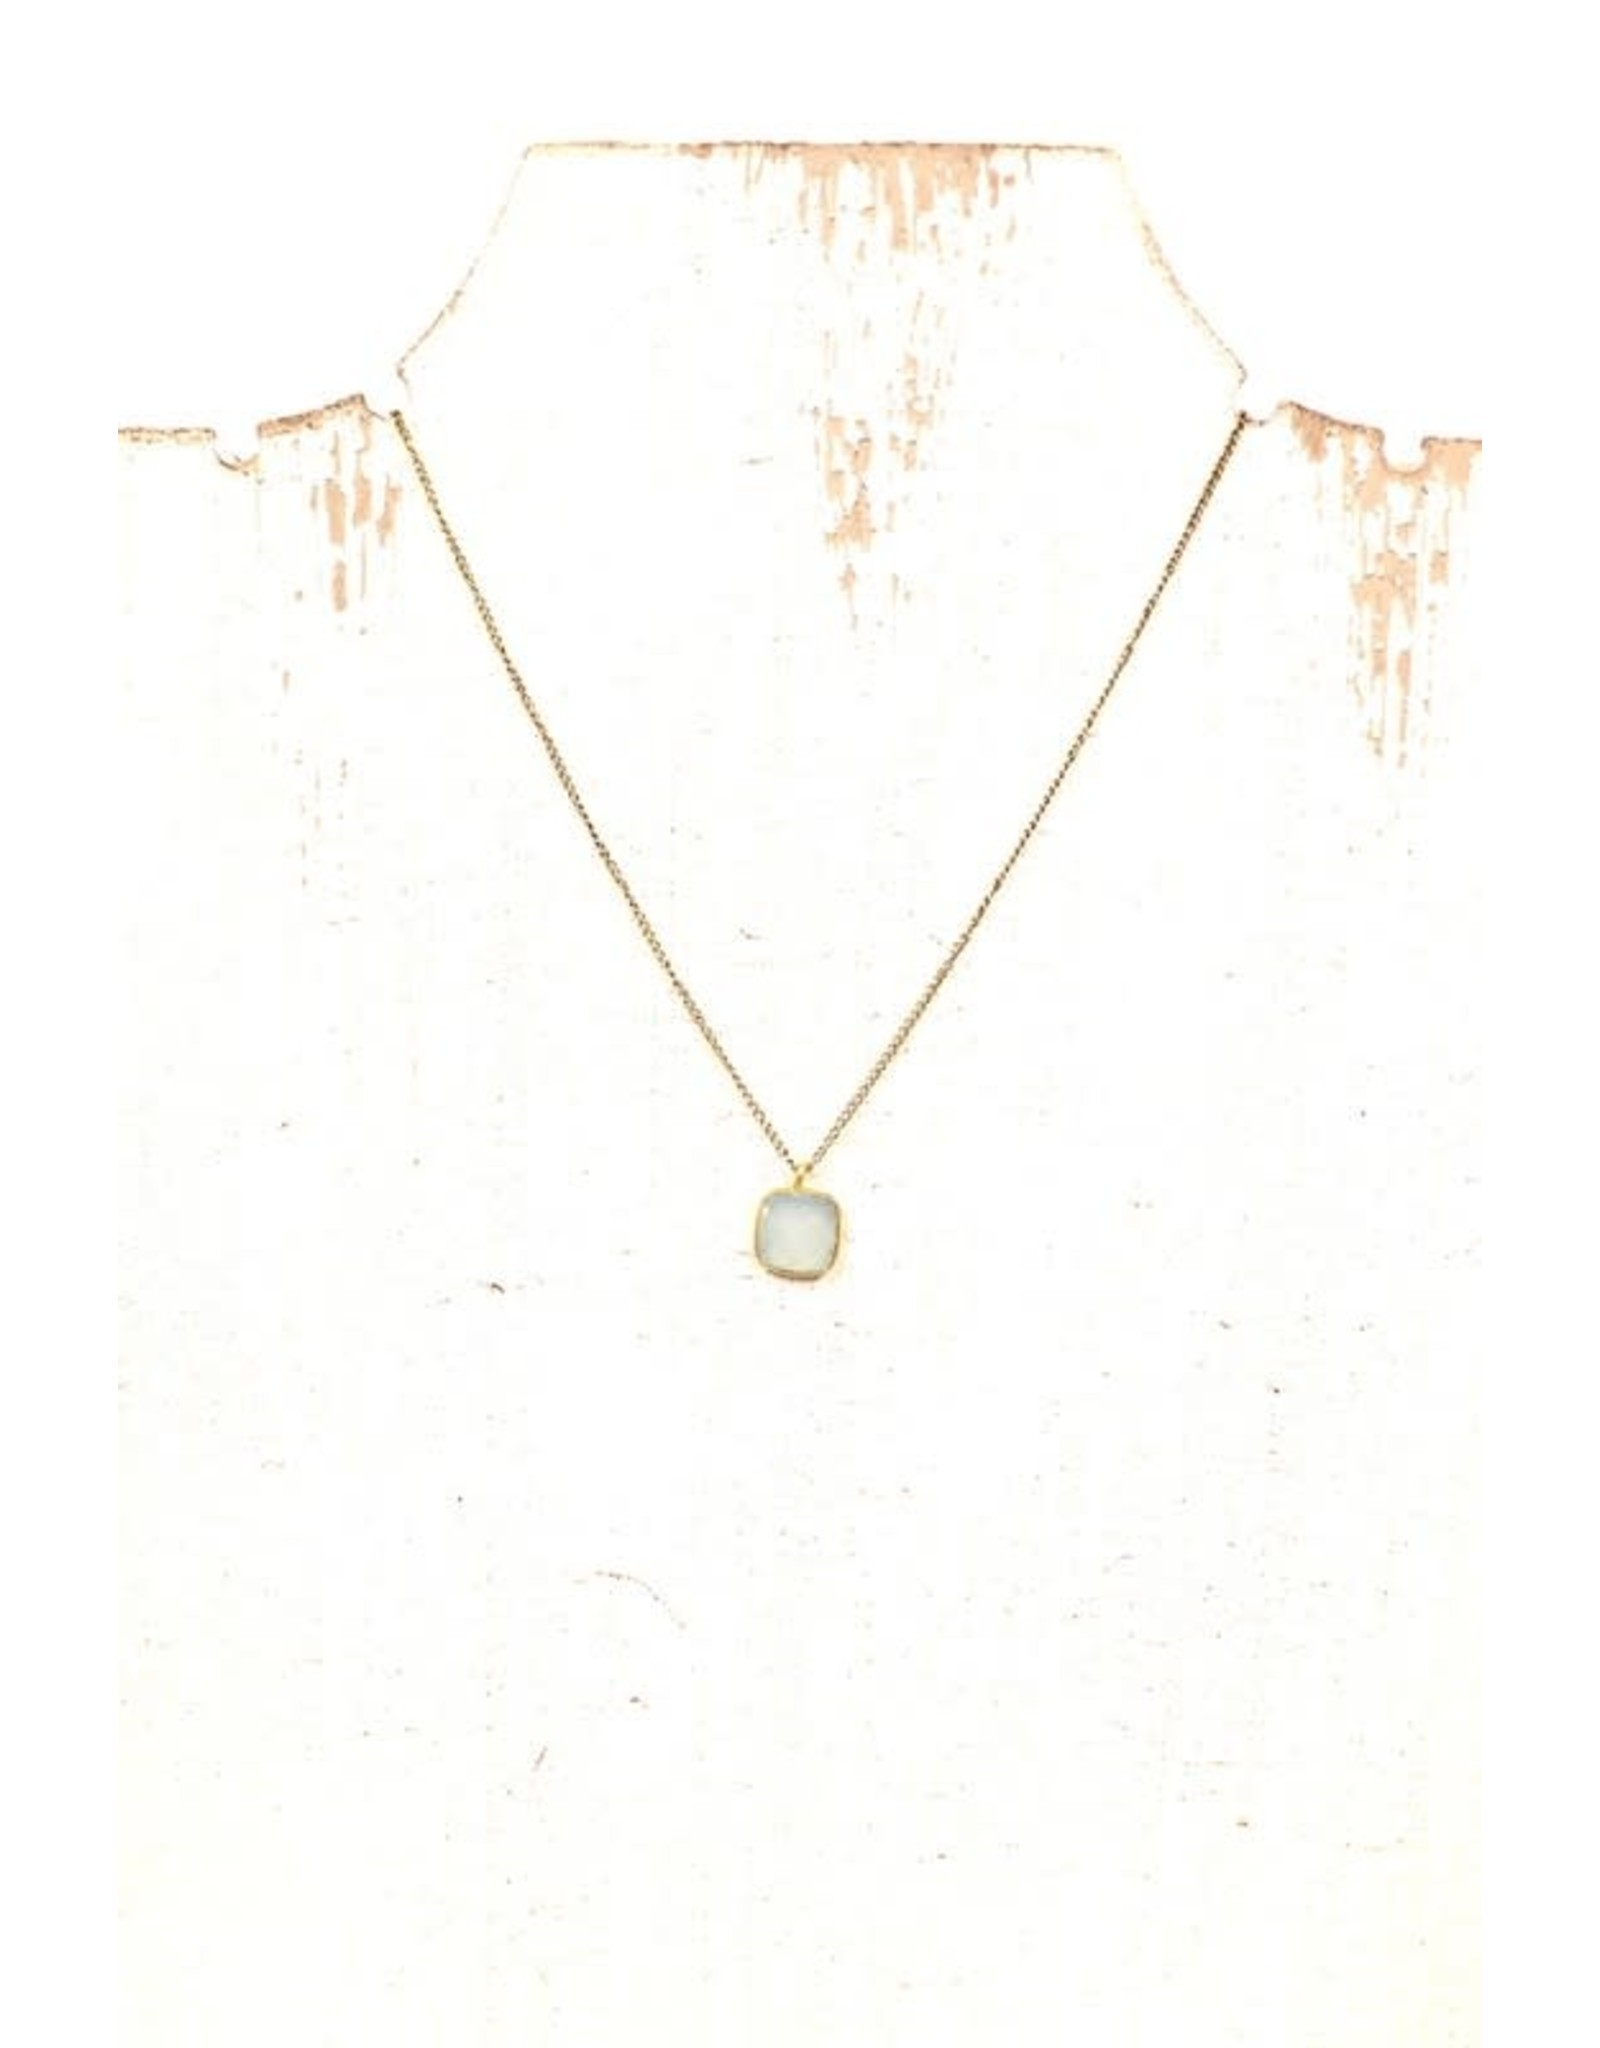 GOLD WHITE MINT PRECIOUS STONE CHARM NECKLACE N-141